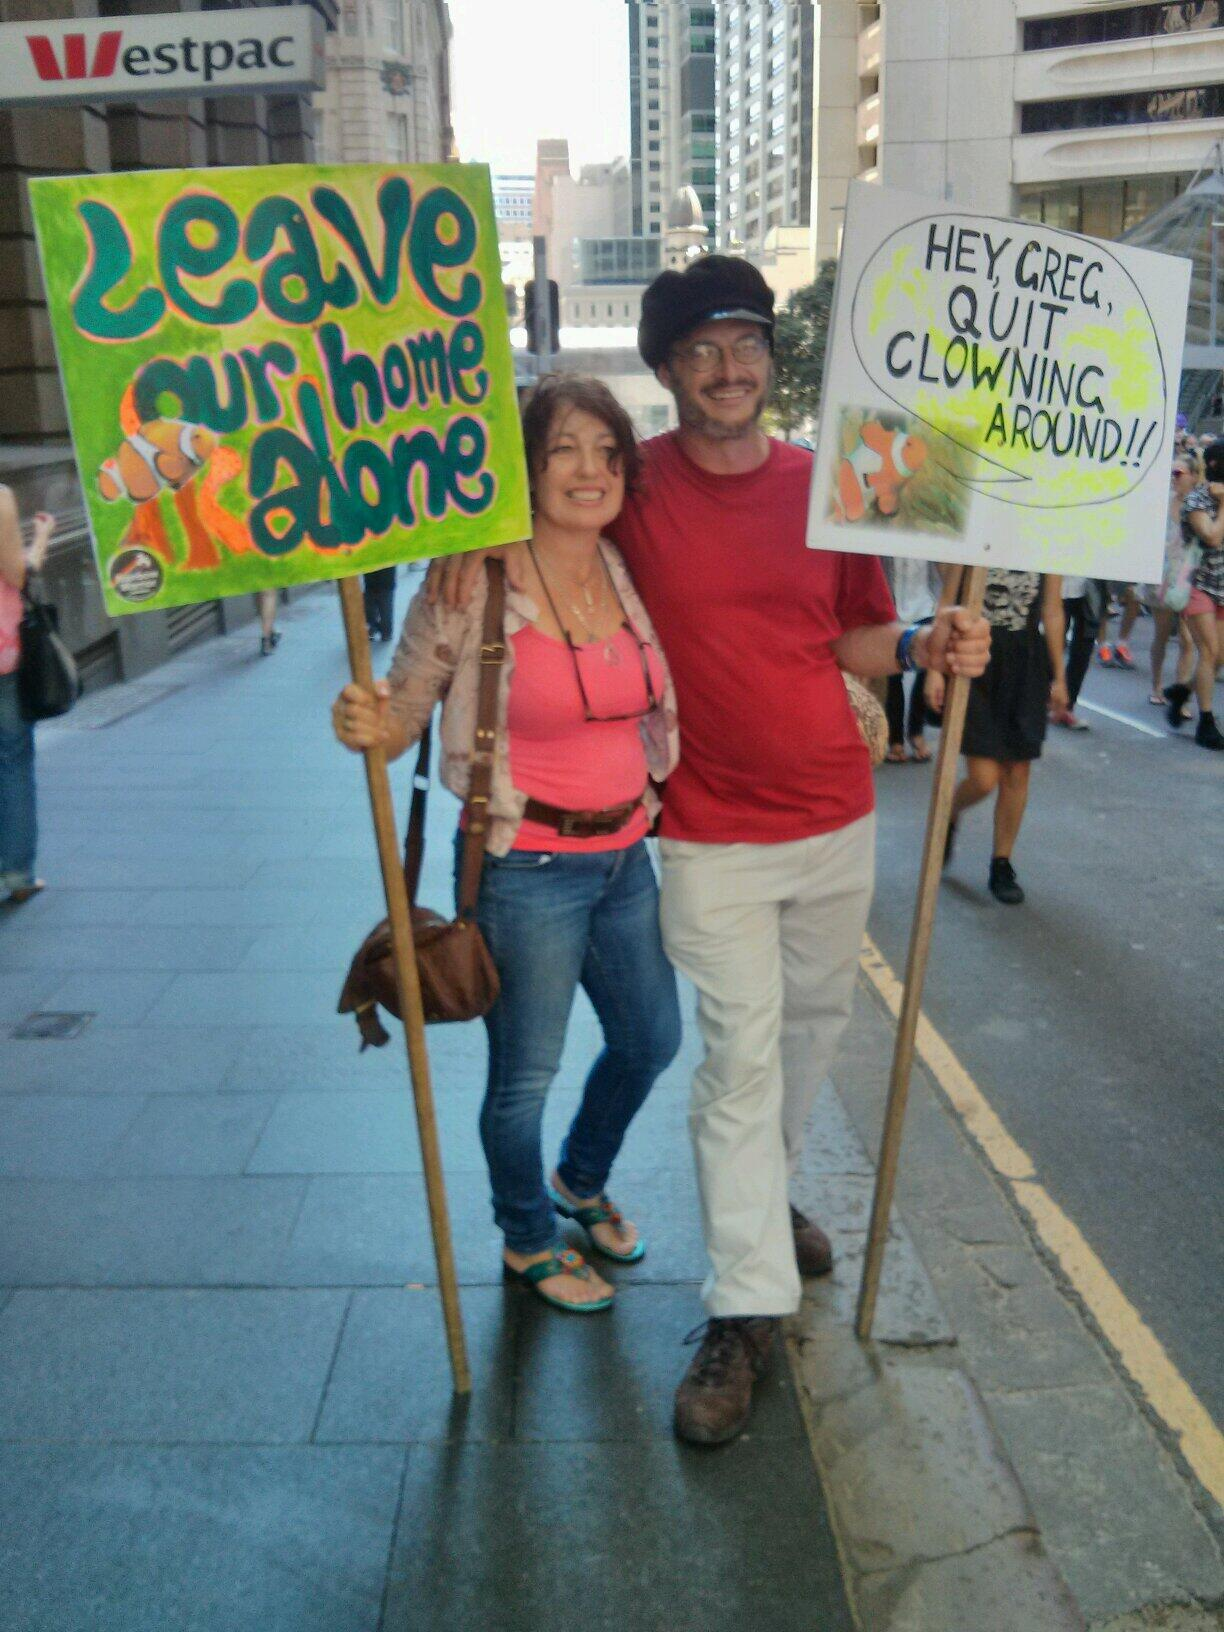 Twitter / GreenpeaceAustP: Some lovely Greenpeace supporters ...